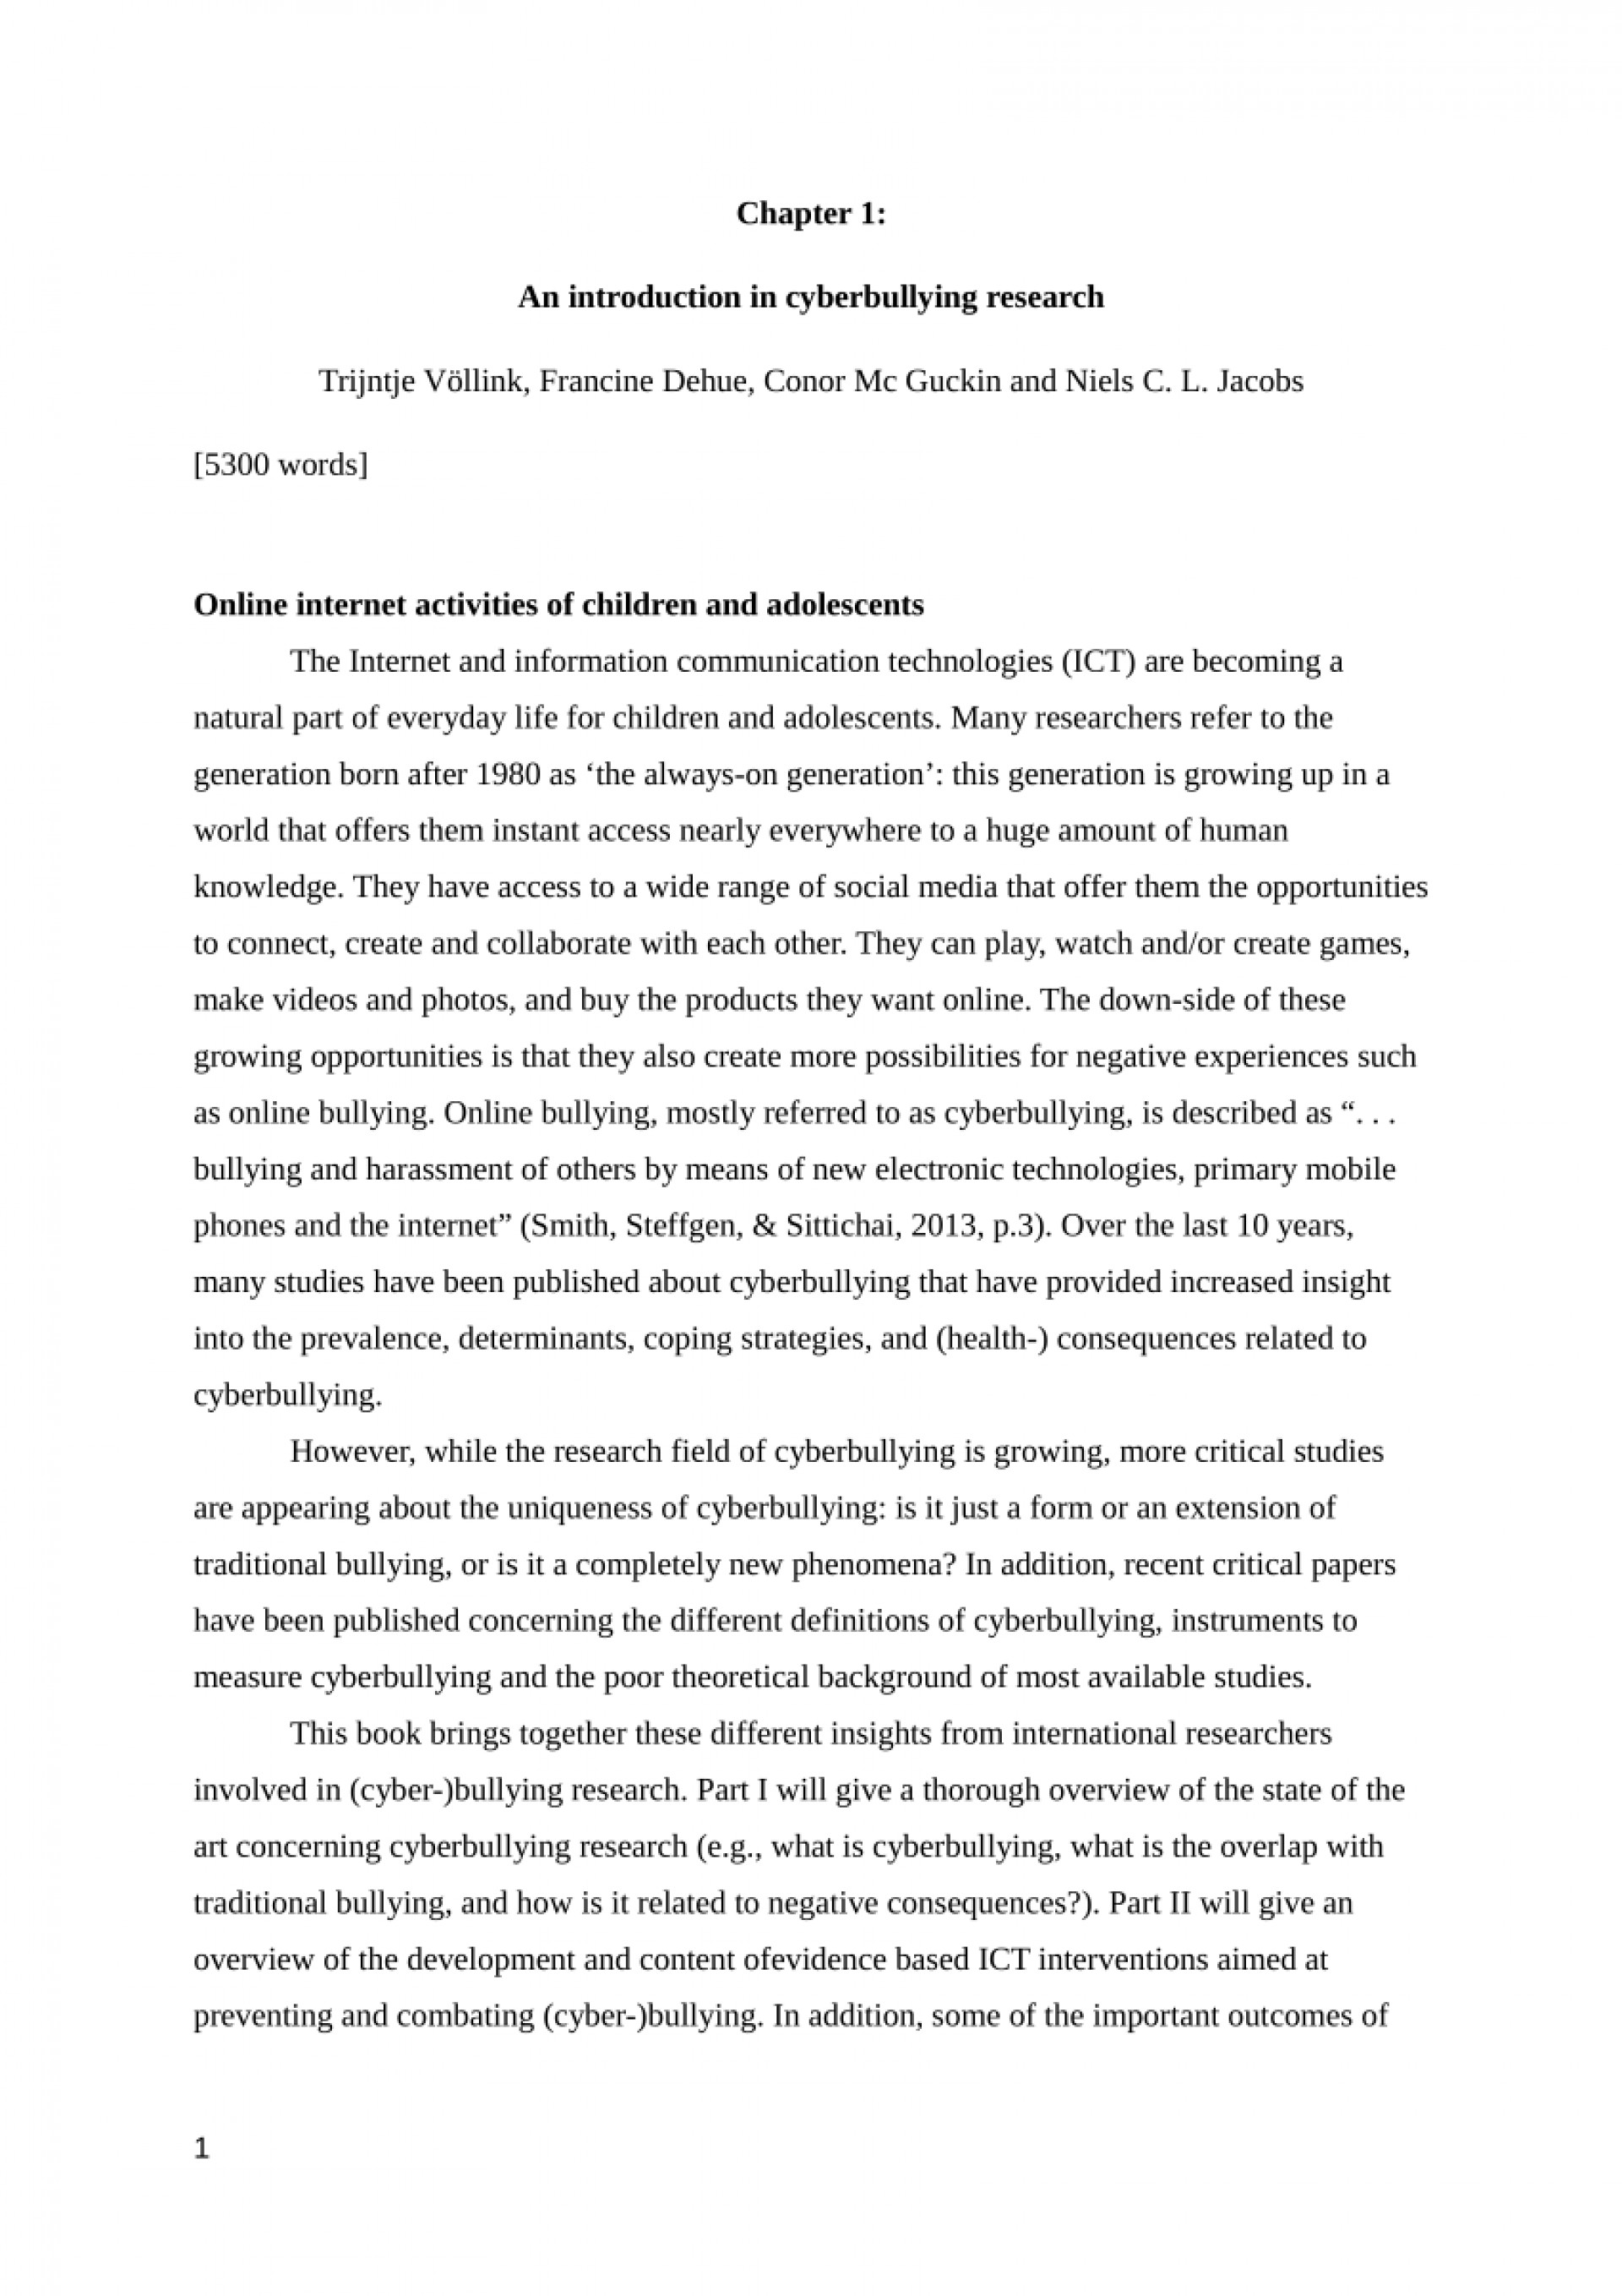 001 Cyberbullying Research Paper Chapter Excellent 3 1920